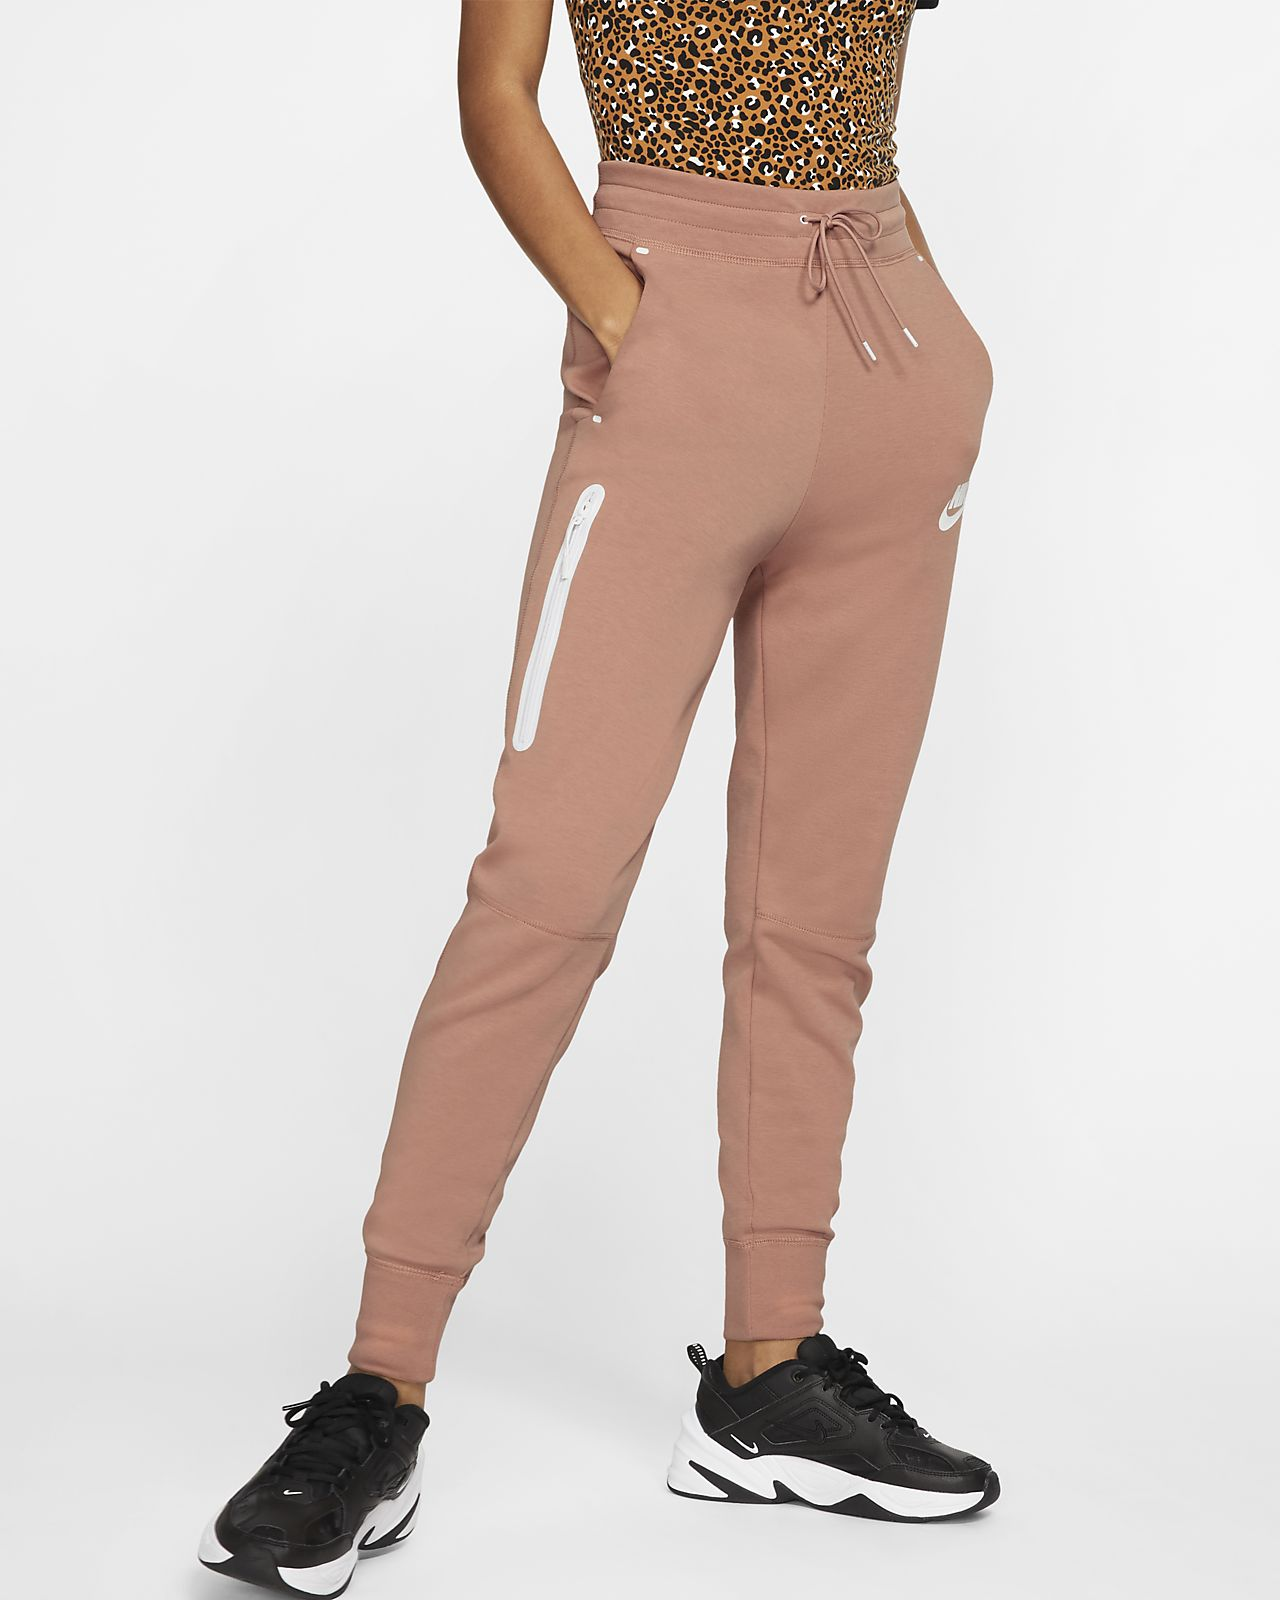 5358f8423f2 Nike Sportswear Tech Fleece Women's Trousers. Nike.com NL